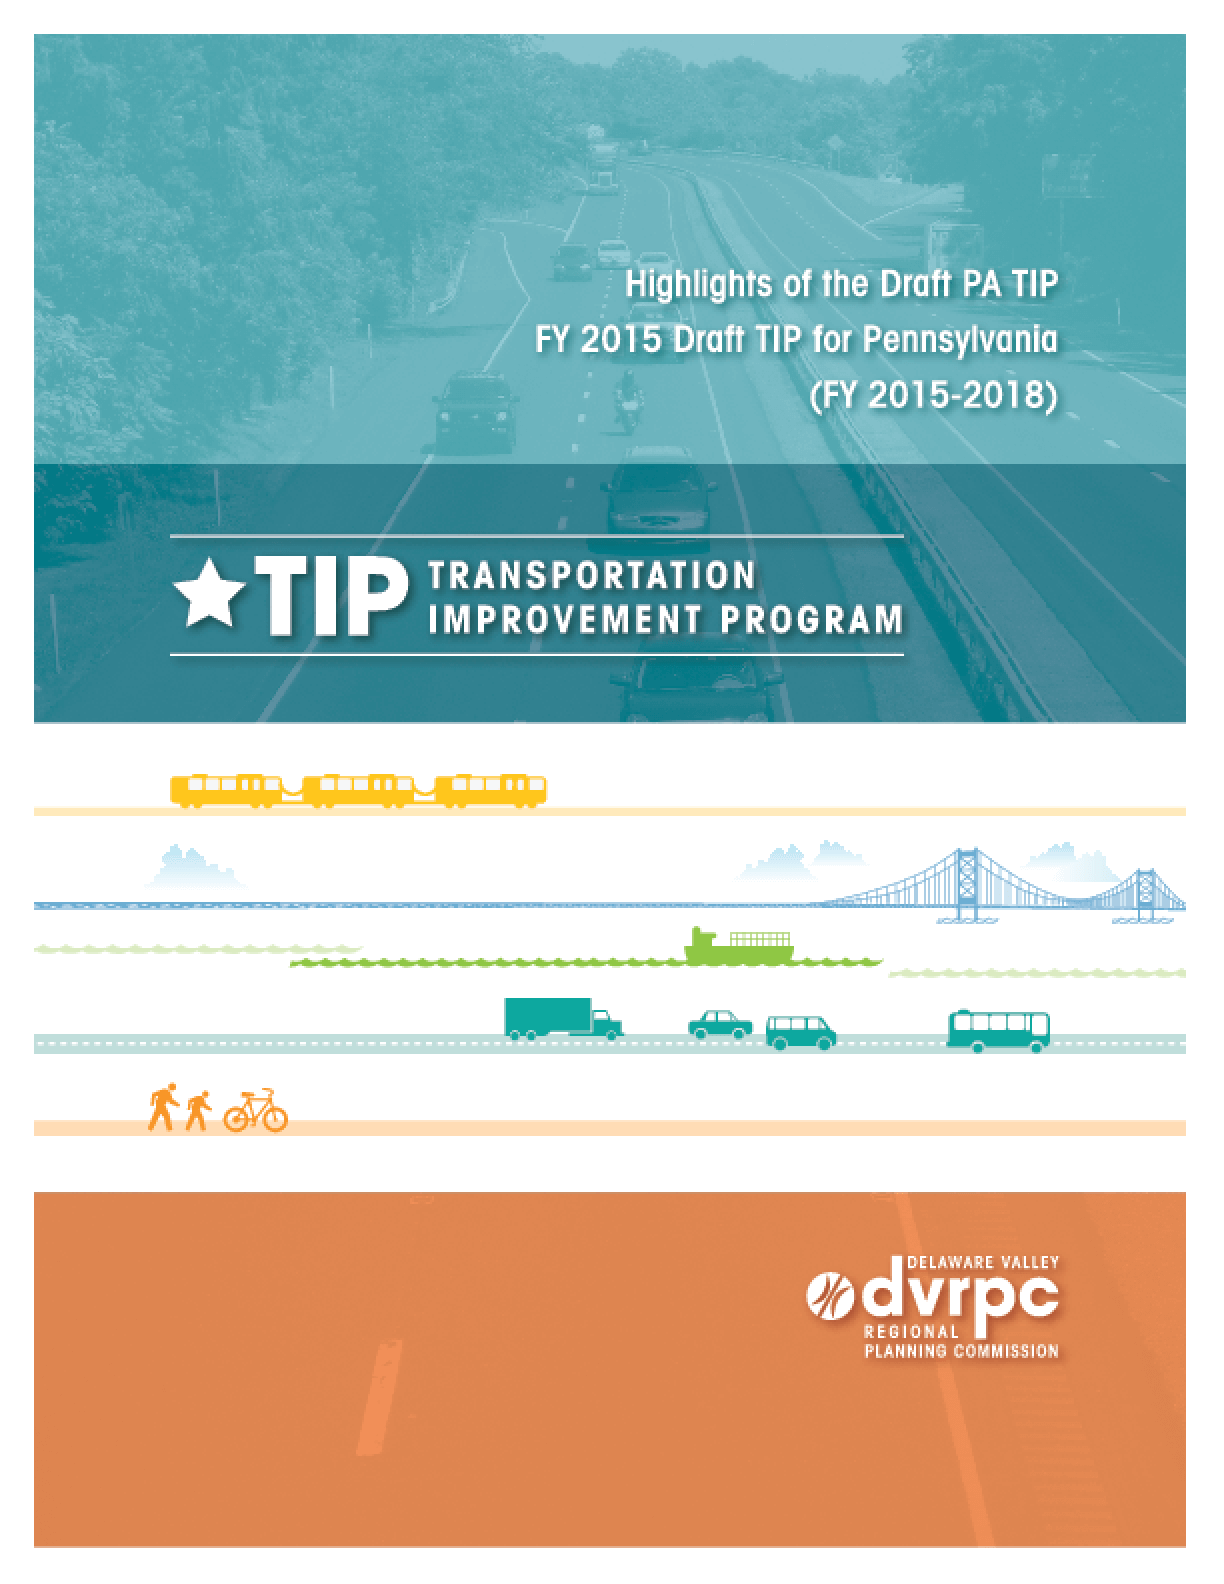 Highlights of the DVRPC FY2015 Transportation Program (TIP) for Pennsylvania